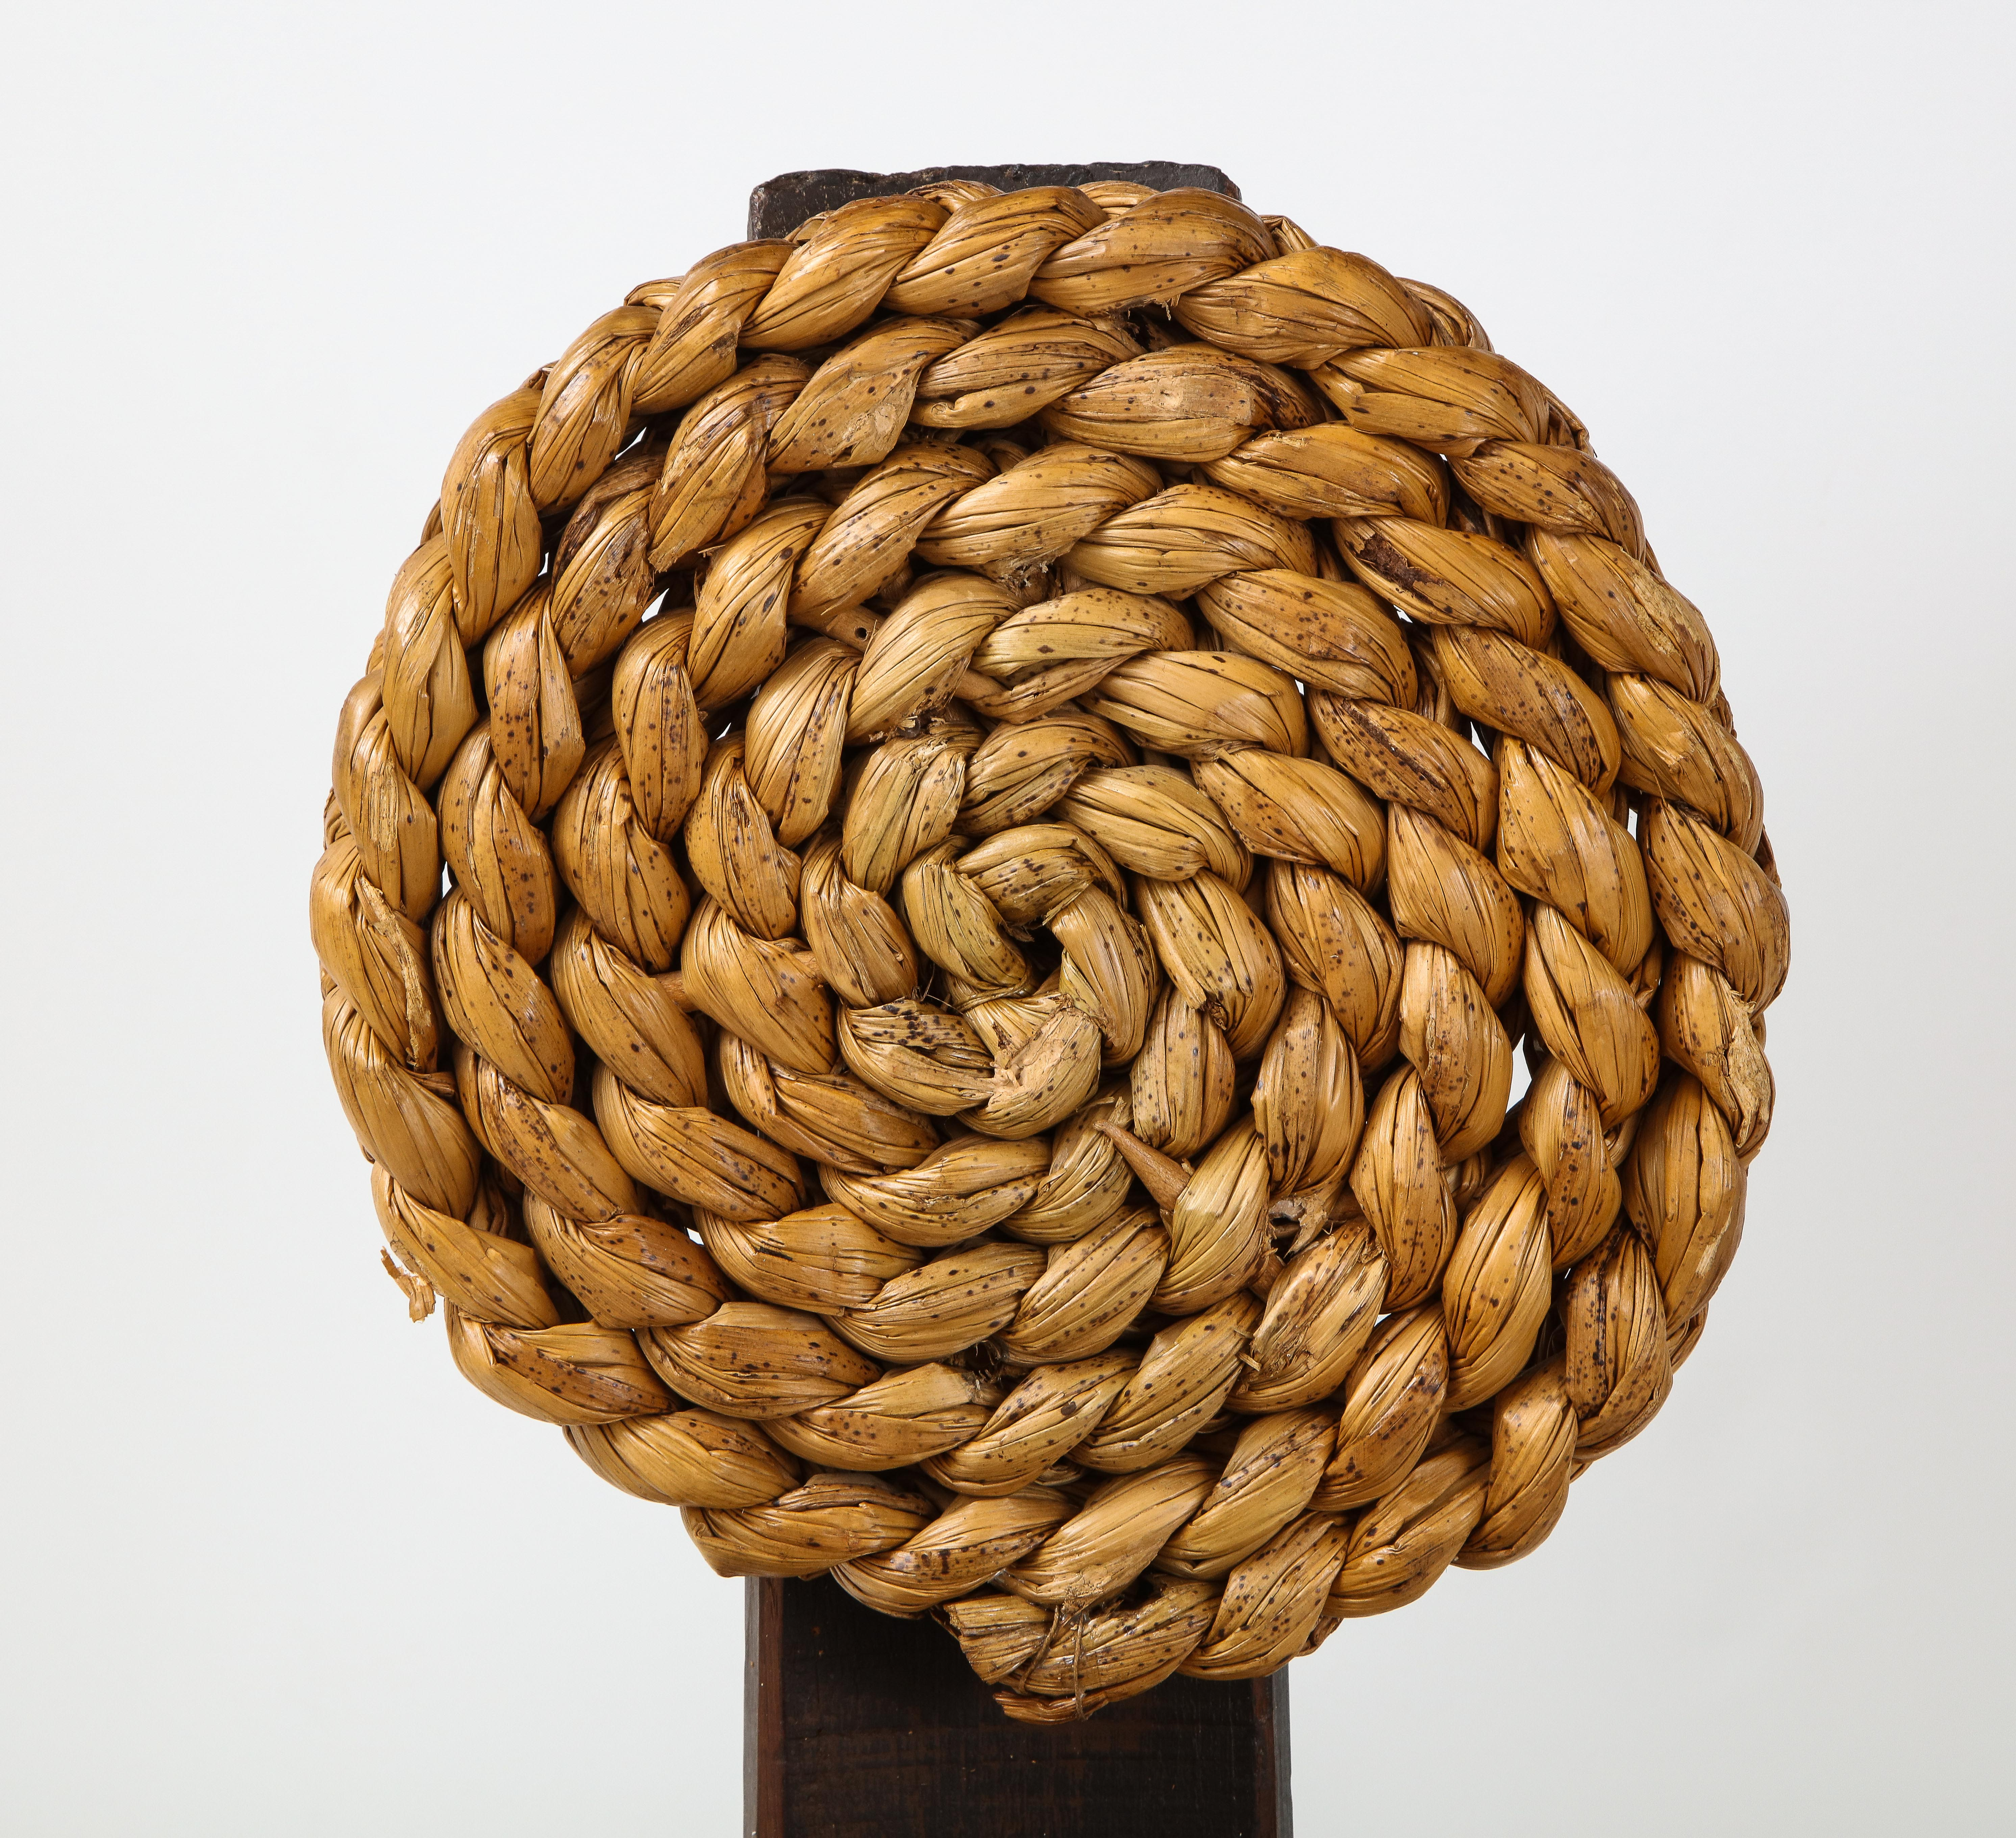 Pair of Rope and Wood Chairs by Adrien Audoux and Frida Minet   soyun k.